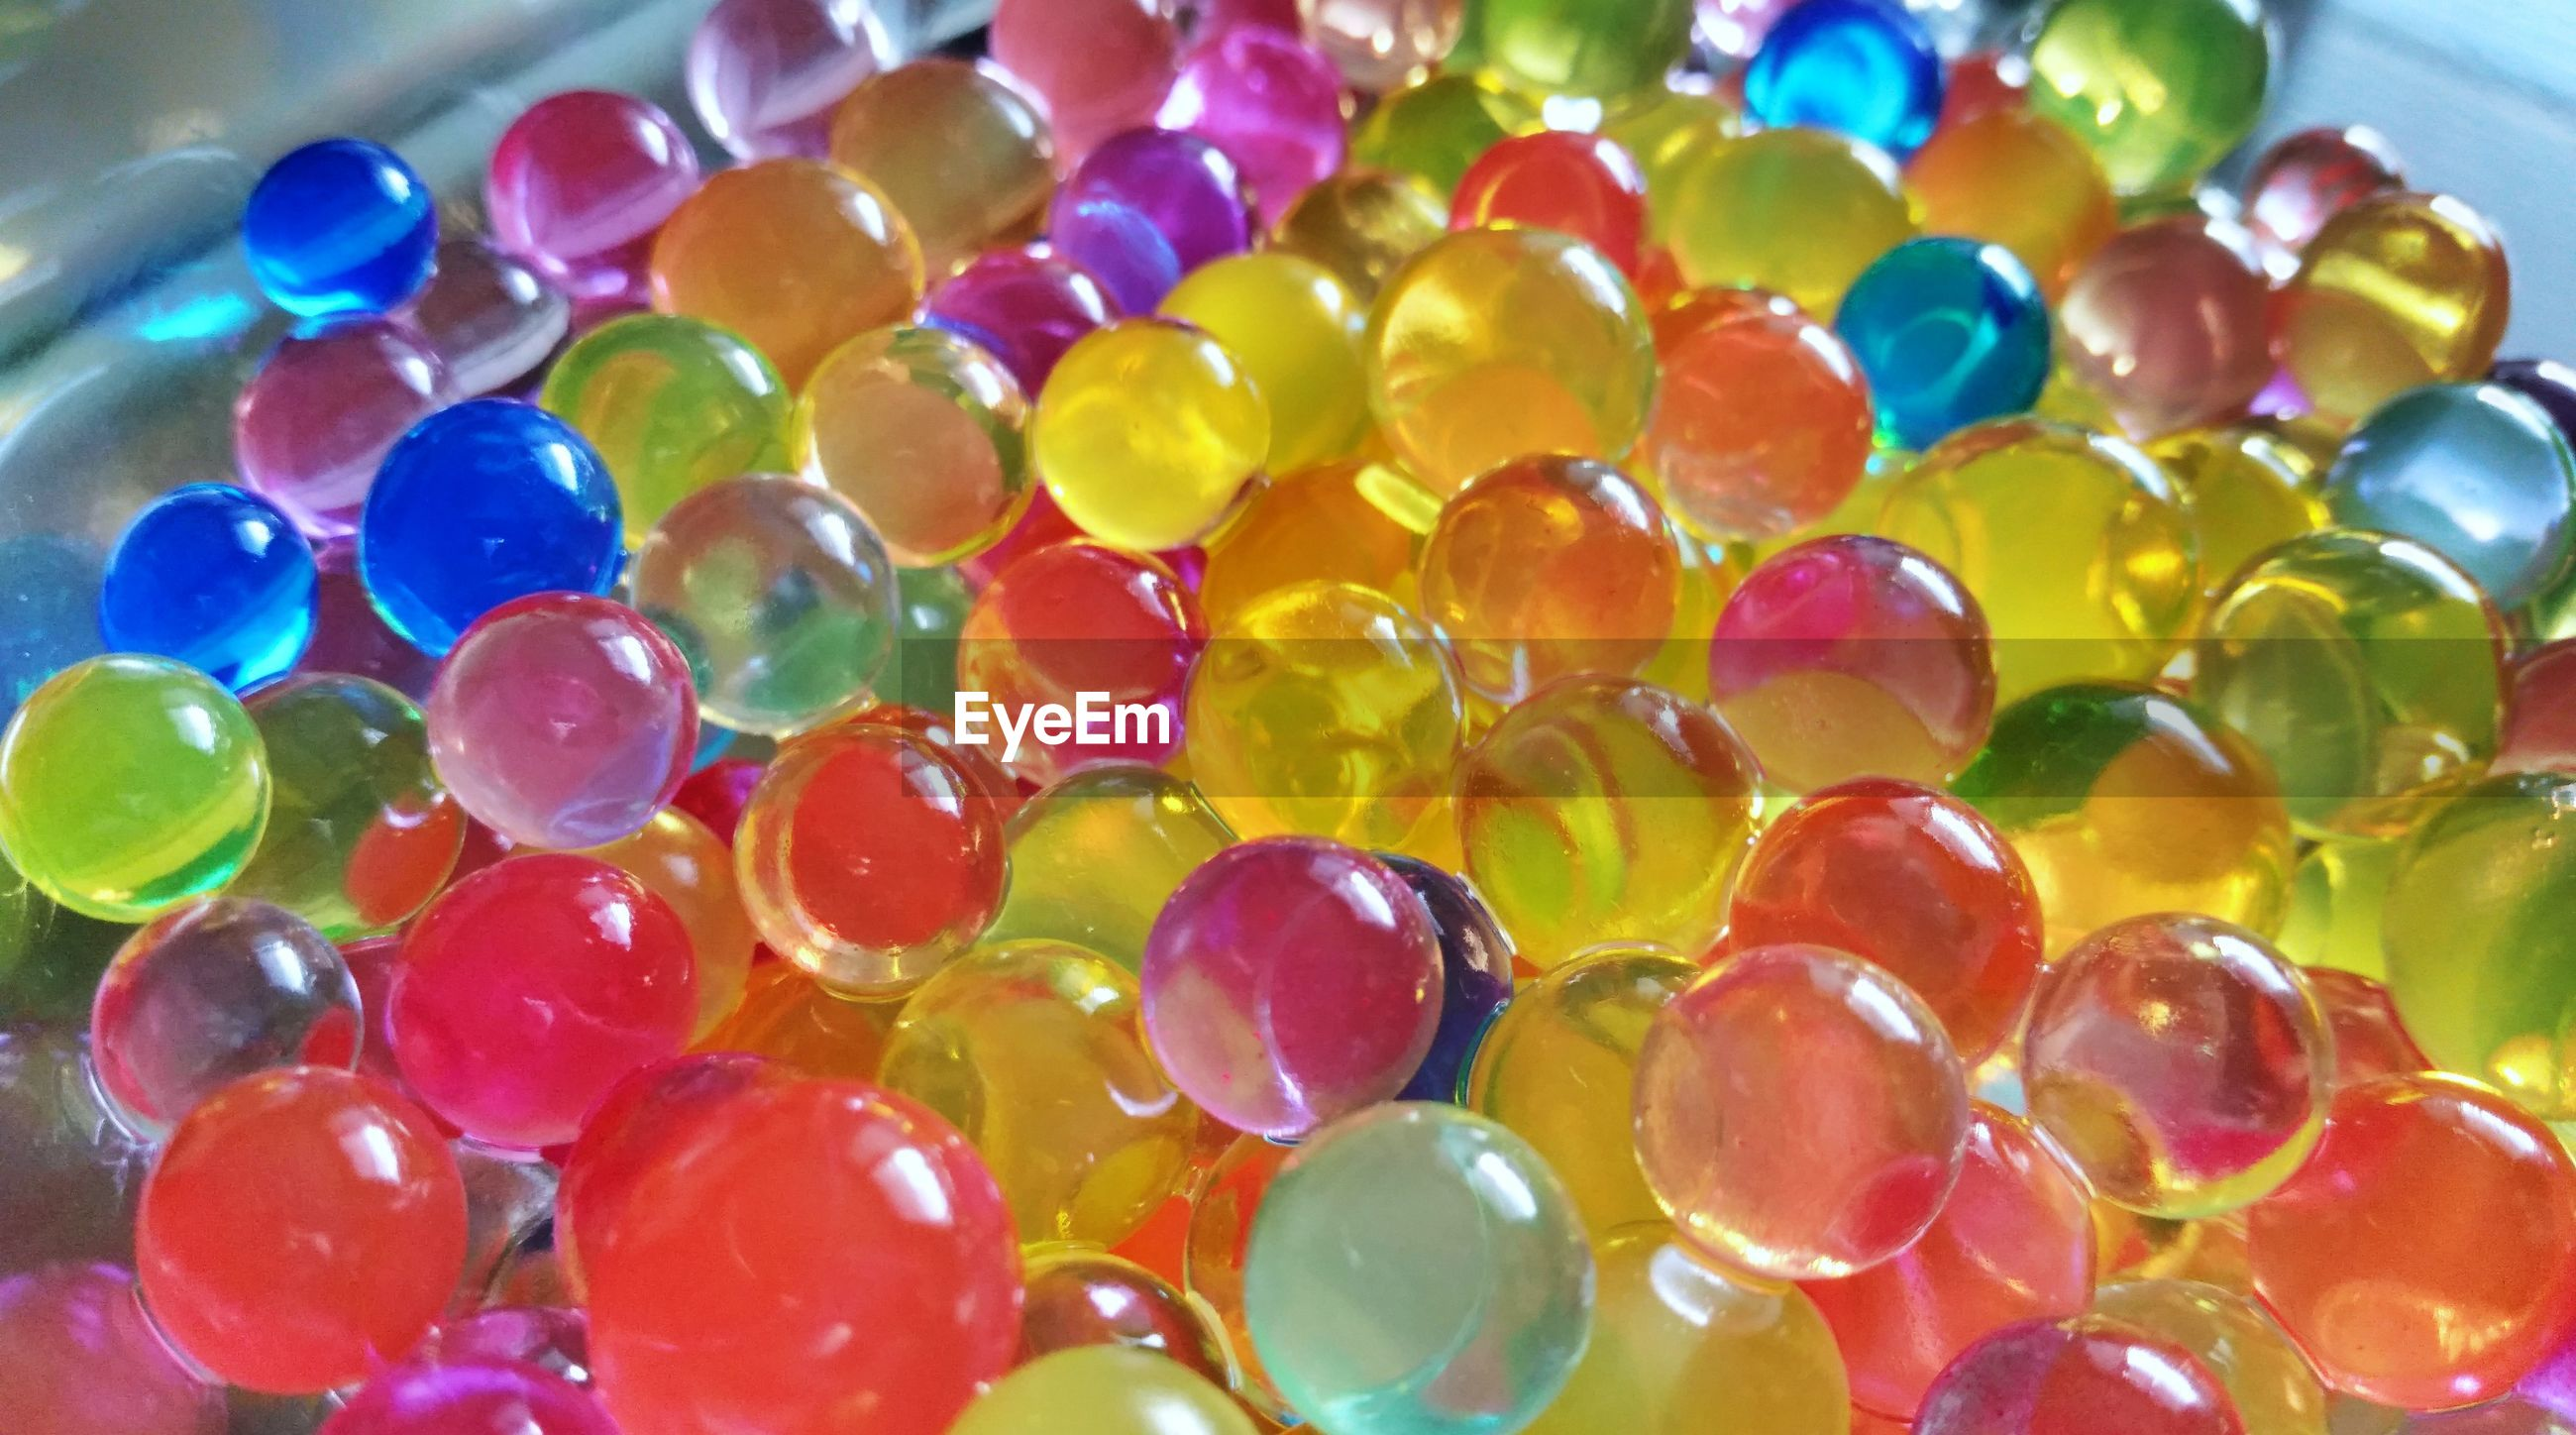 FULL FRAME SHOT OF COLORFUL BALLS